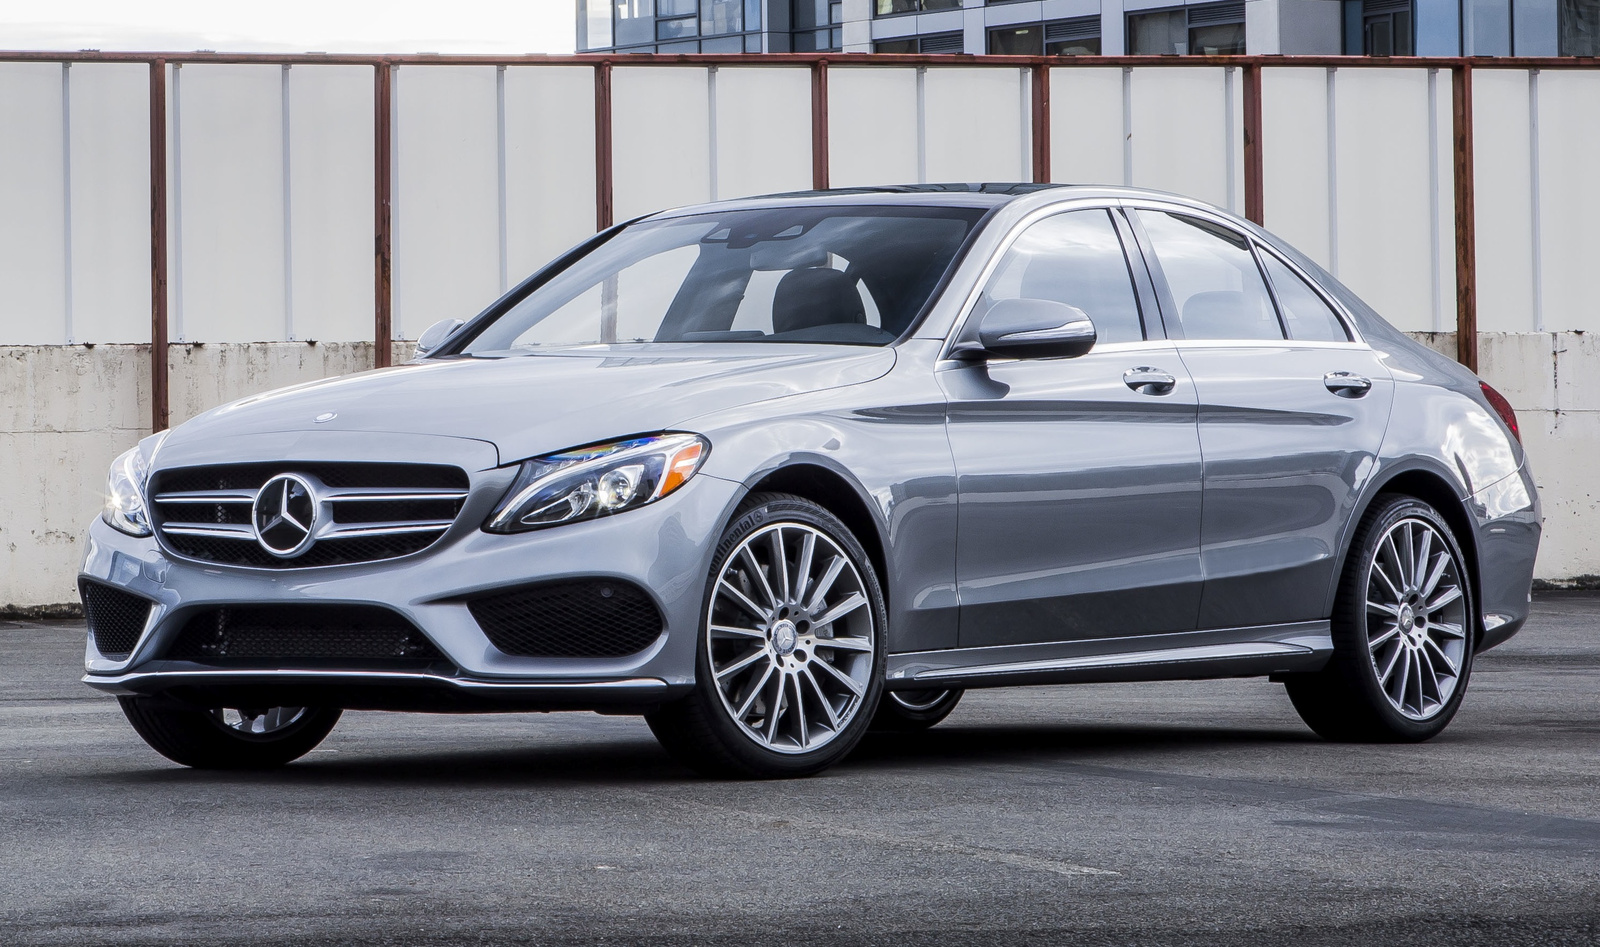 2015 mercedes benz c class review cargurus for Mercedes benz reviews c class